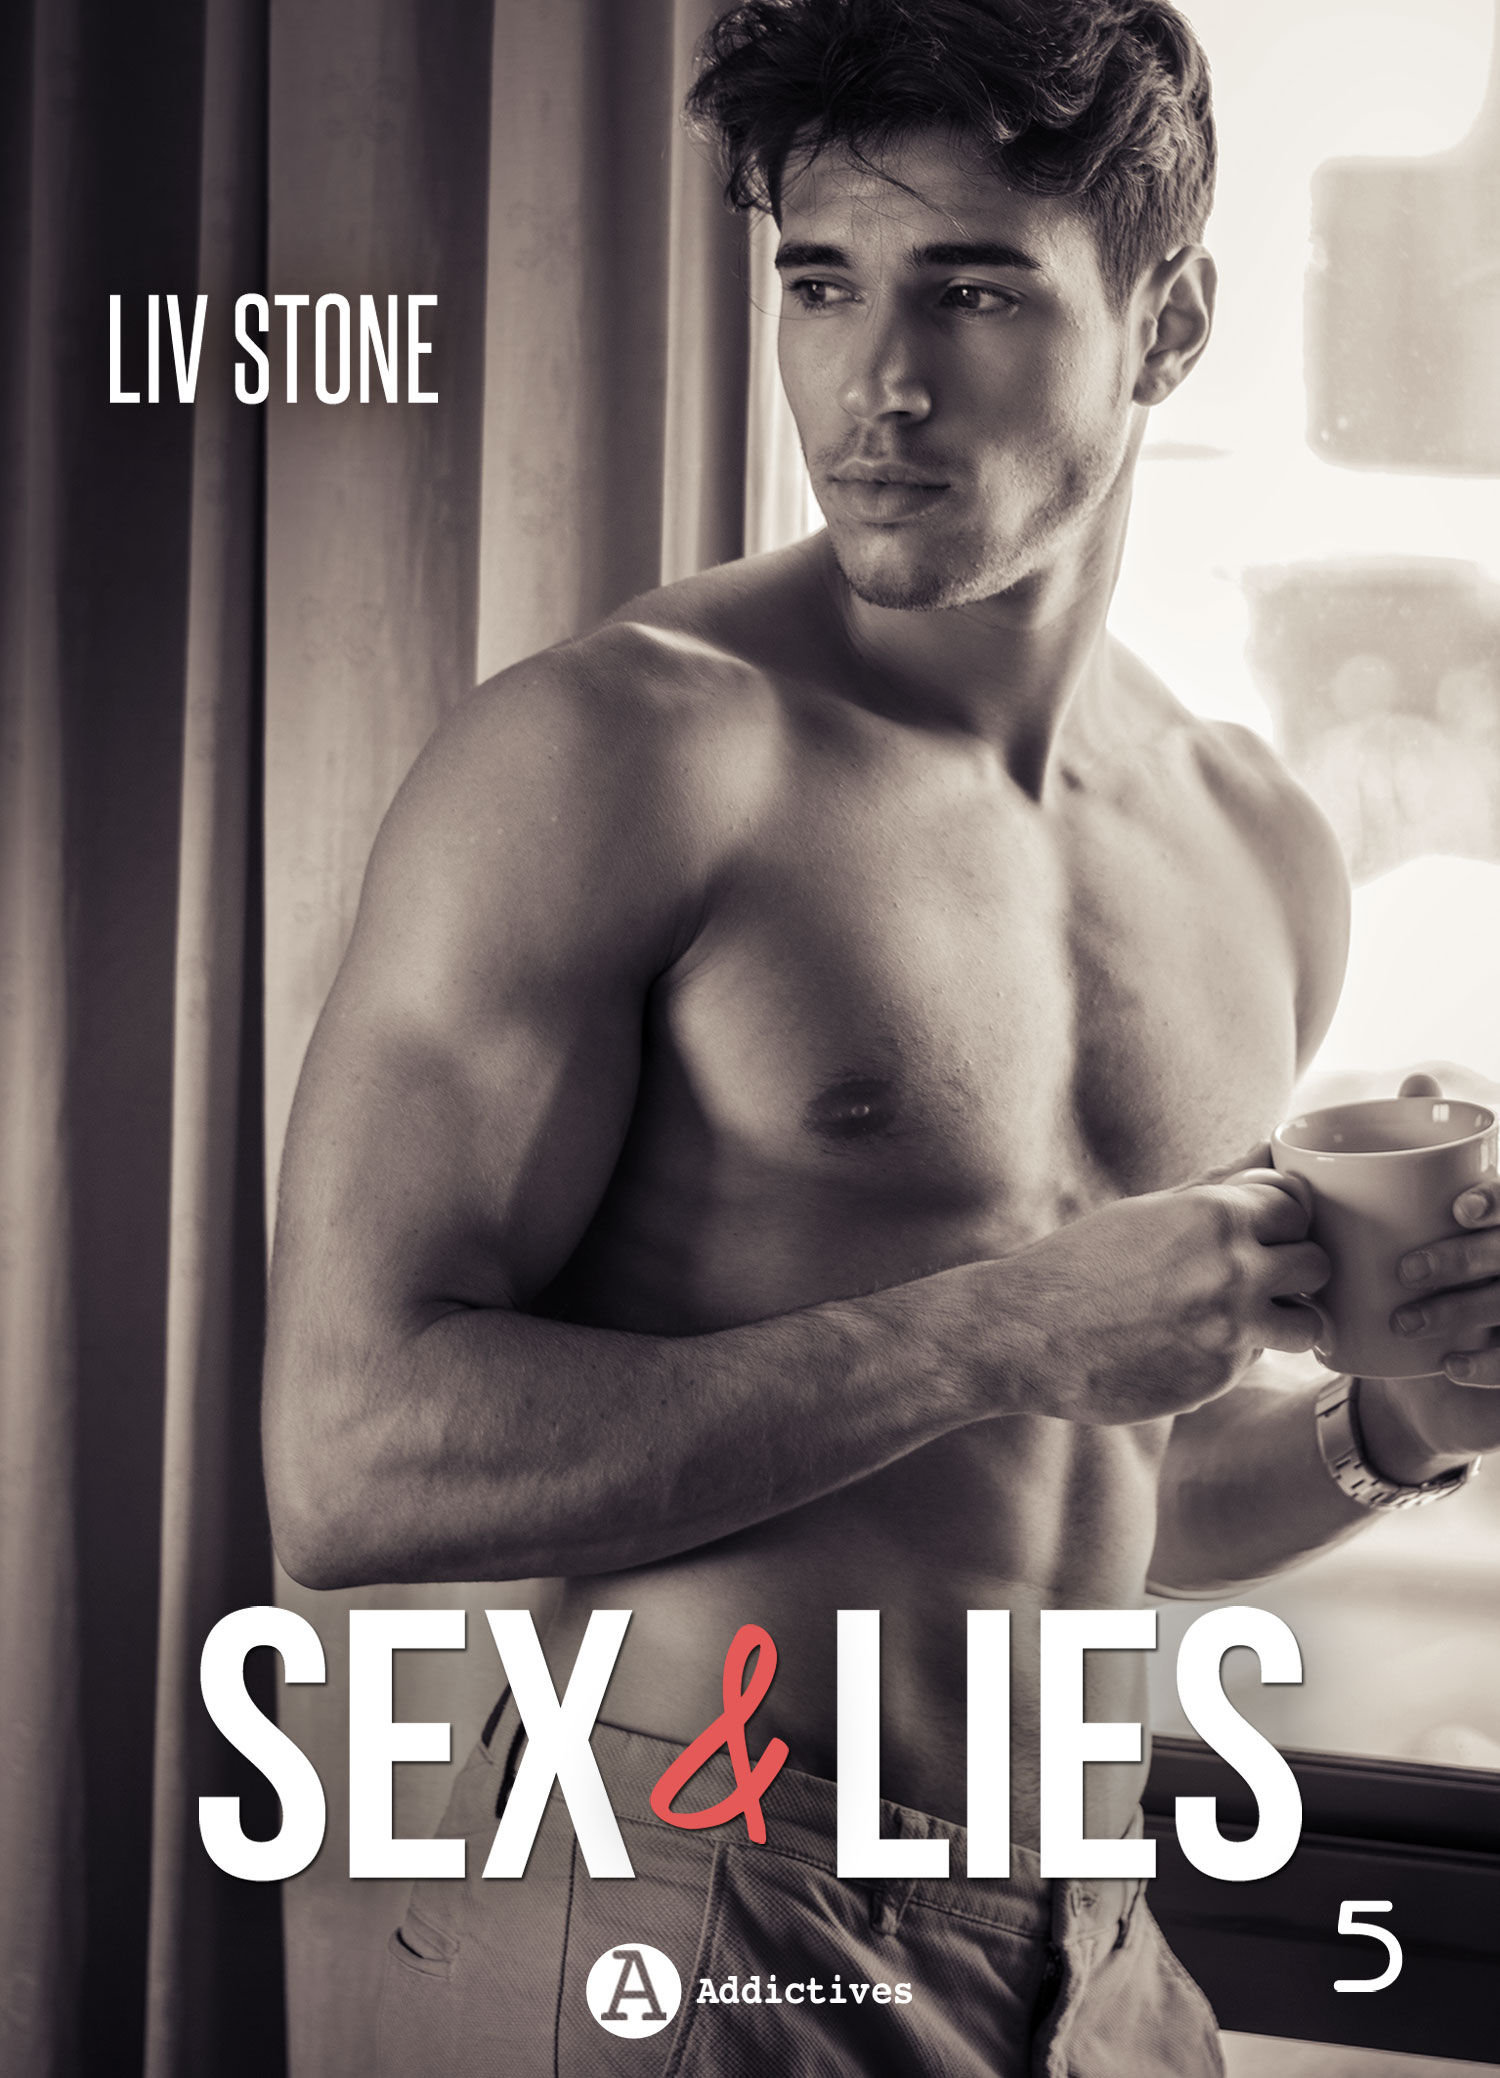 Sex & lies - Vol. 5